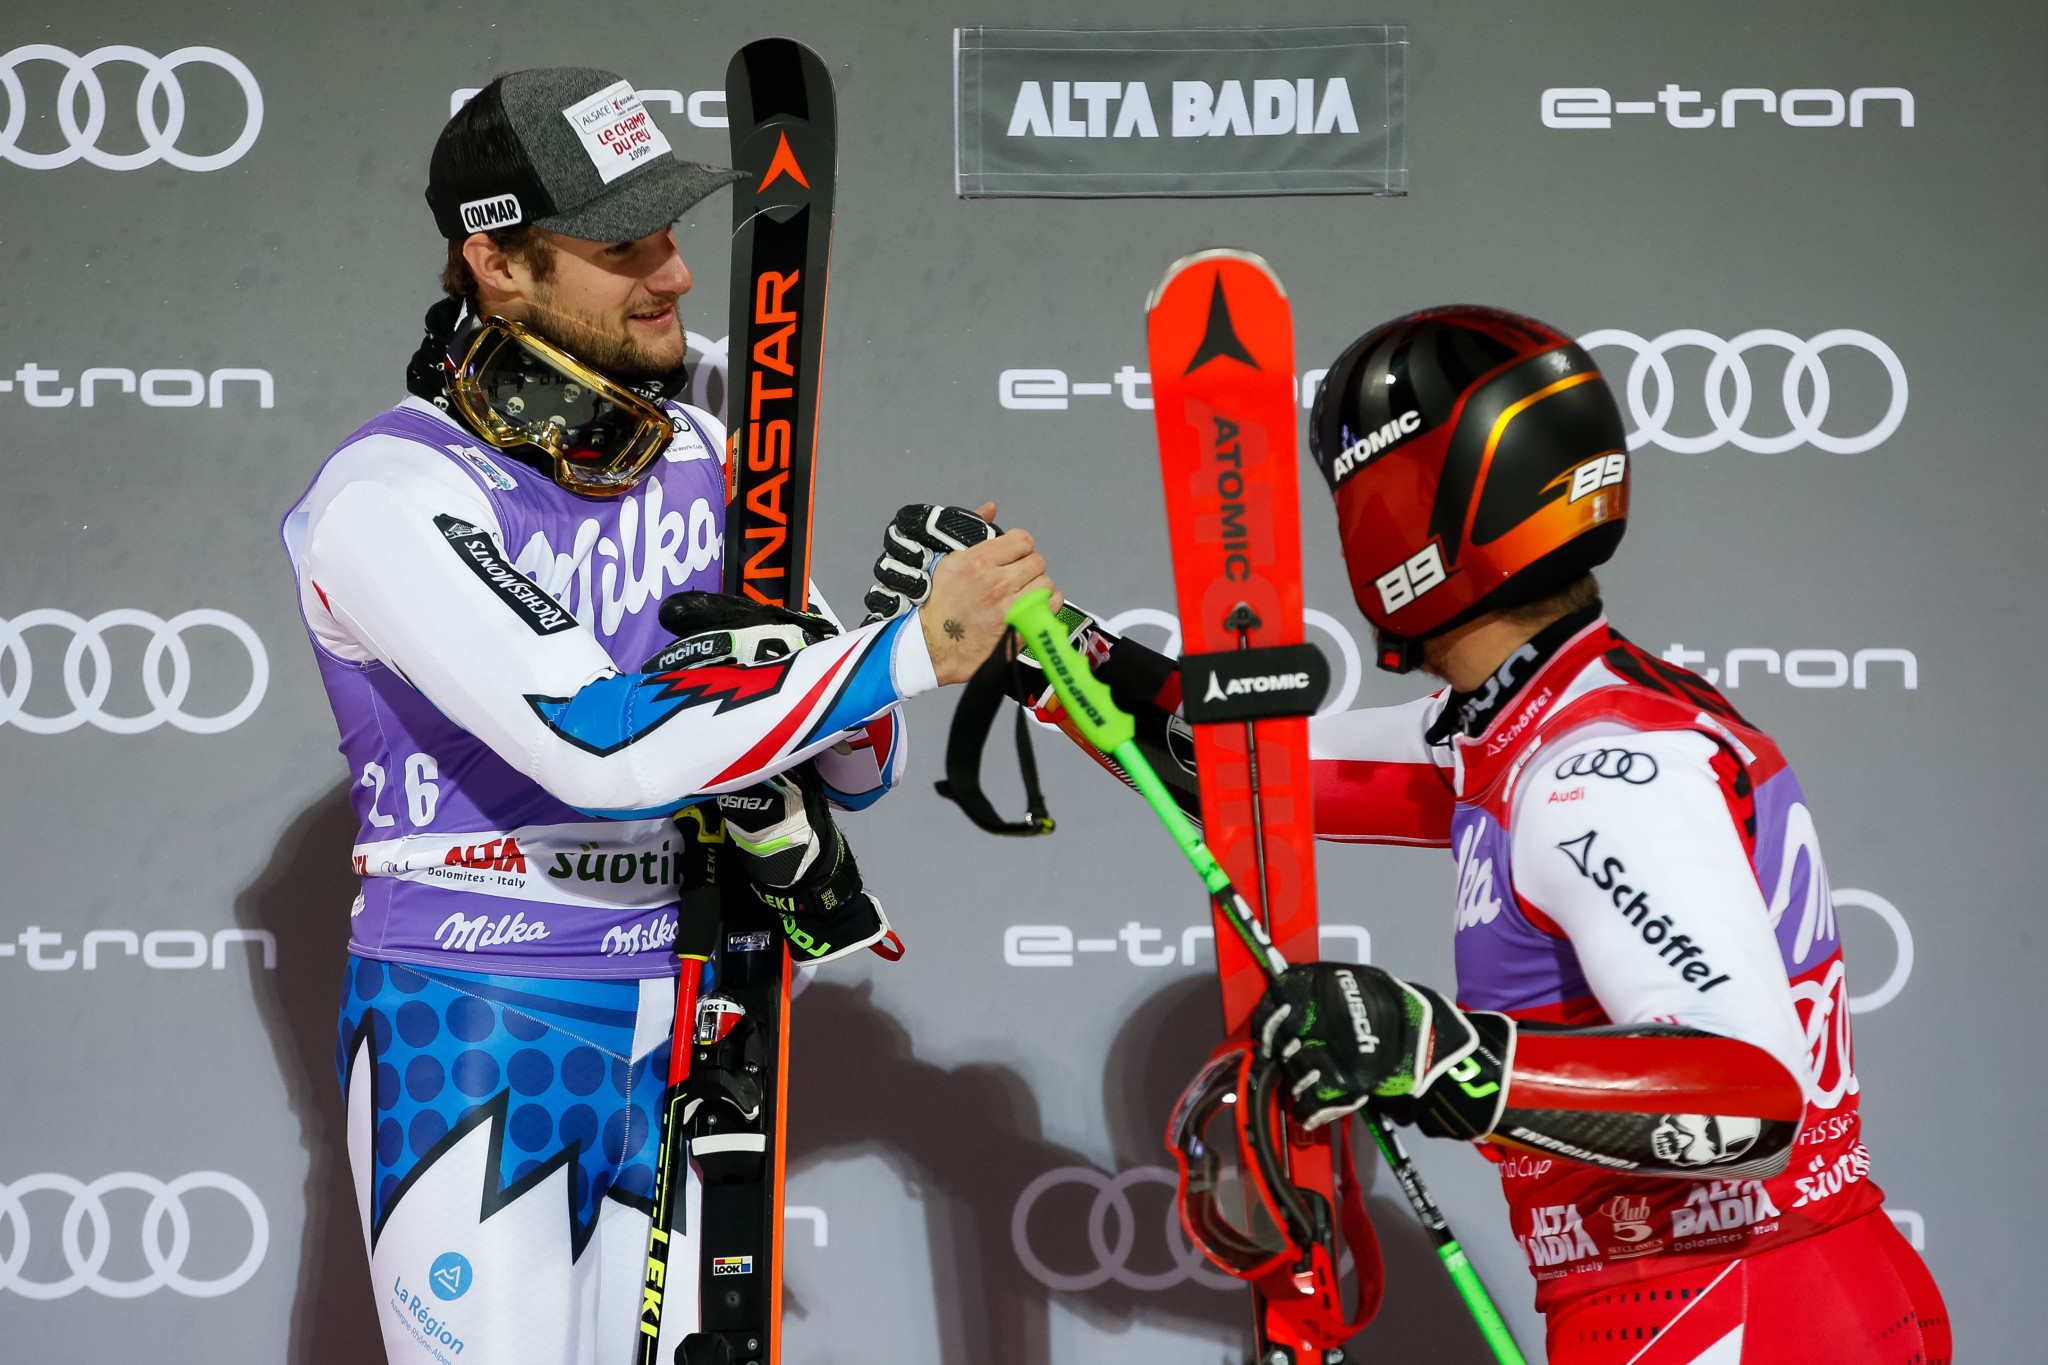 Thibaut Favrot of France was a surprise finalist  alongside Austria's Marcel Hirshcher in the parallel giant slalom event at the FIS Alpine Ski World Cup in Alta Badia ©Getty Images